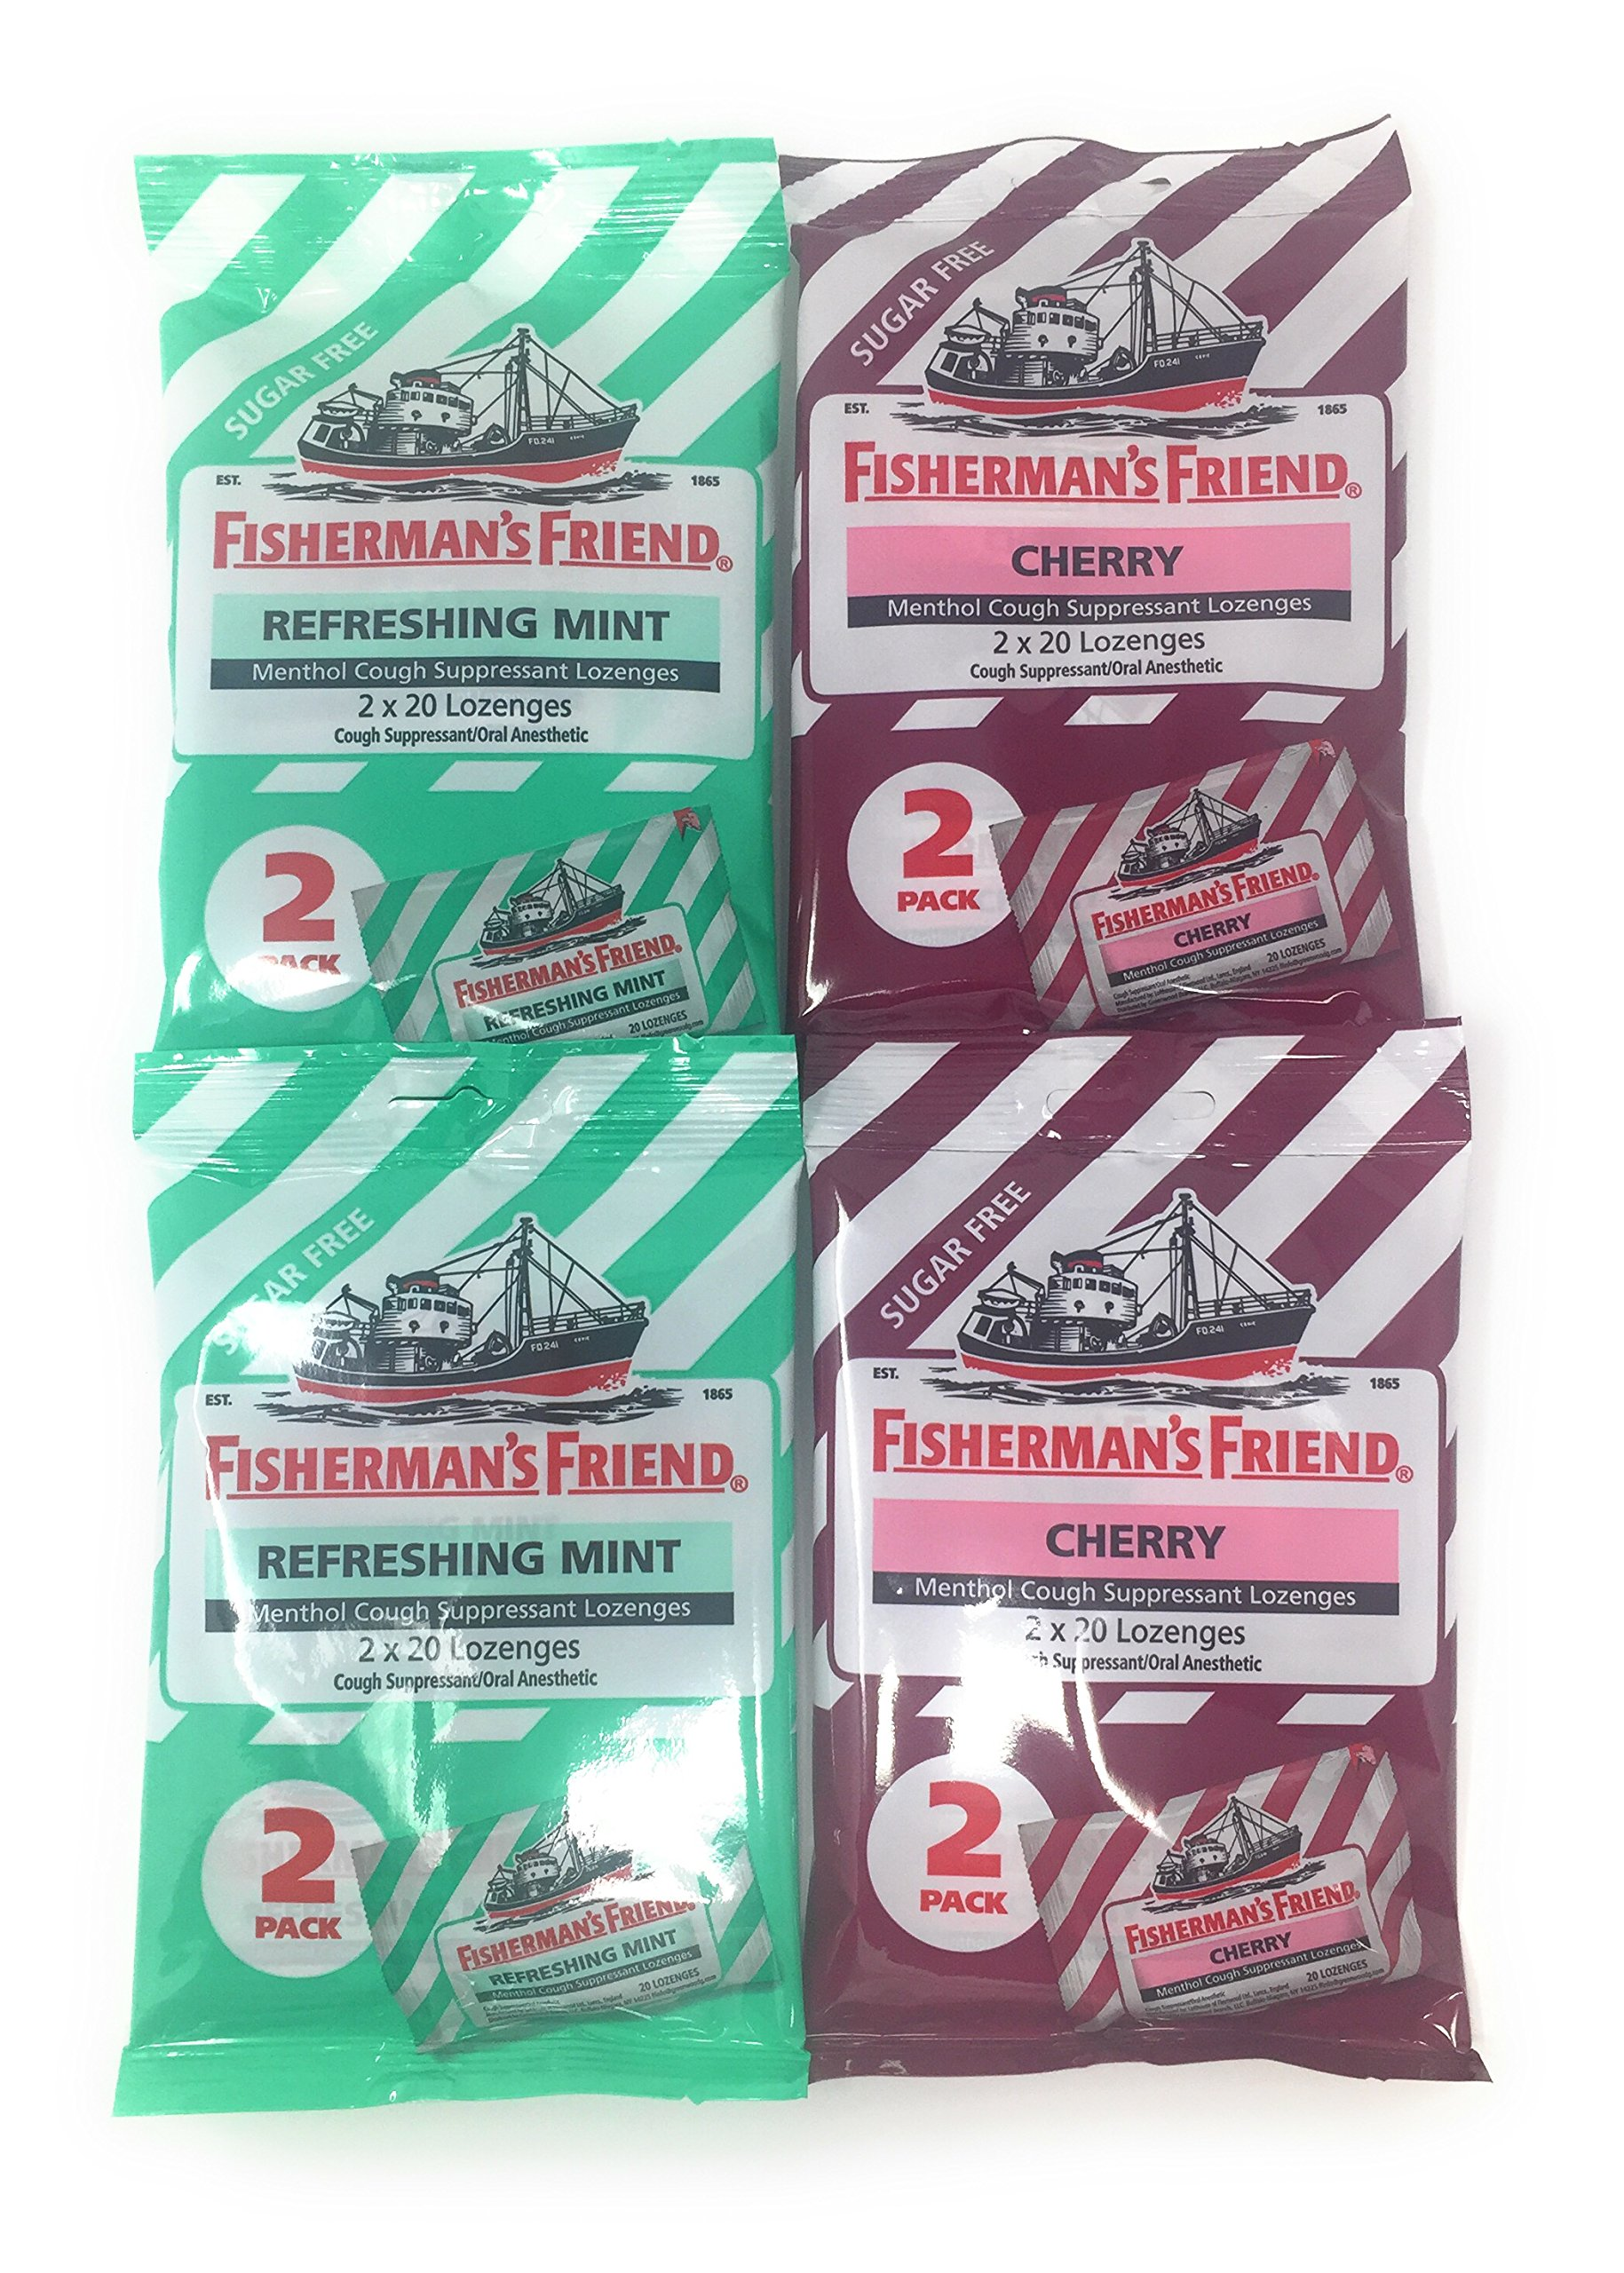 Sugar Free Fisherman's Friend Lozenges, Refreshing Mint & Cherry Cough Suppressant Lozenges, 40-Count Bags (2 Packs of Each Flavor)